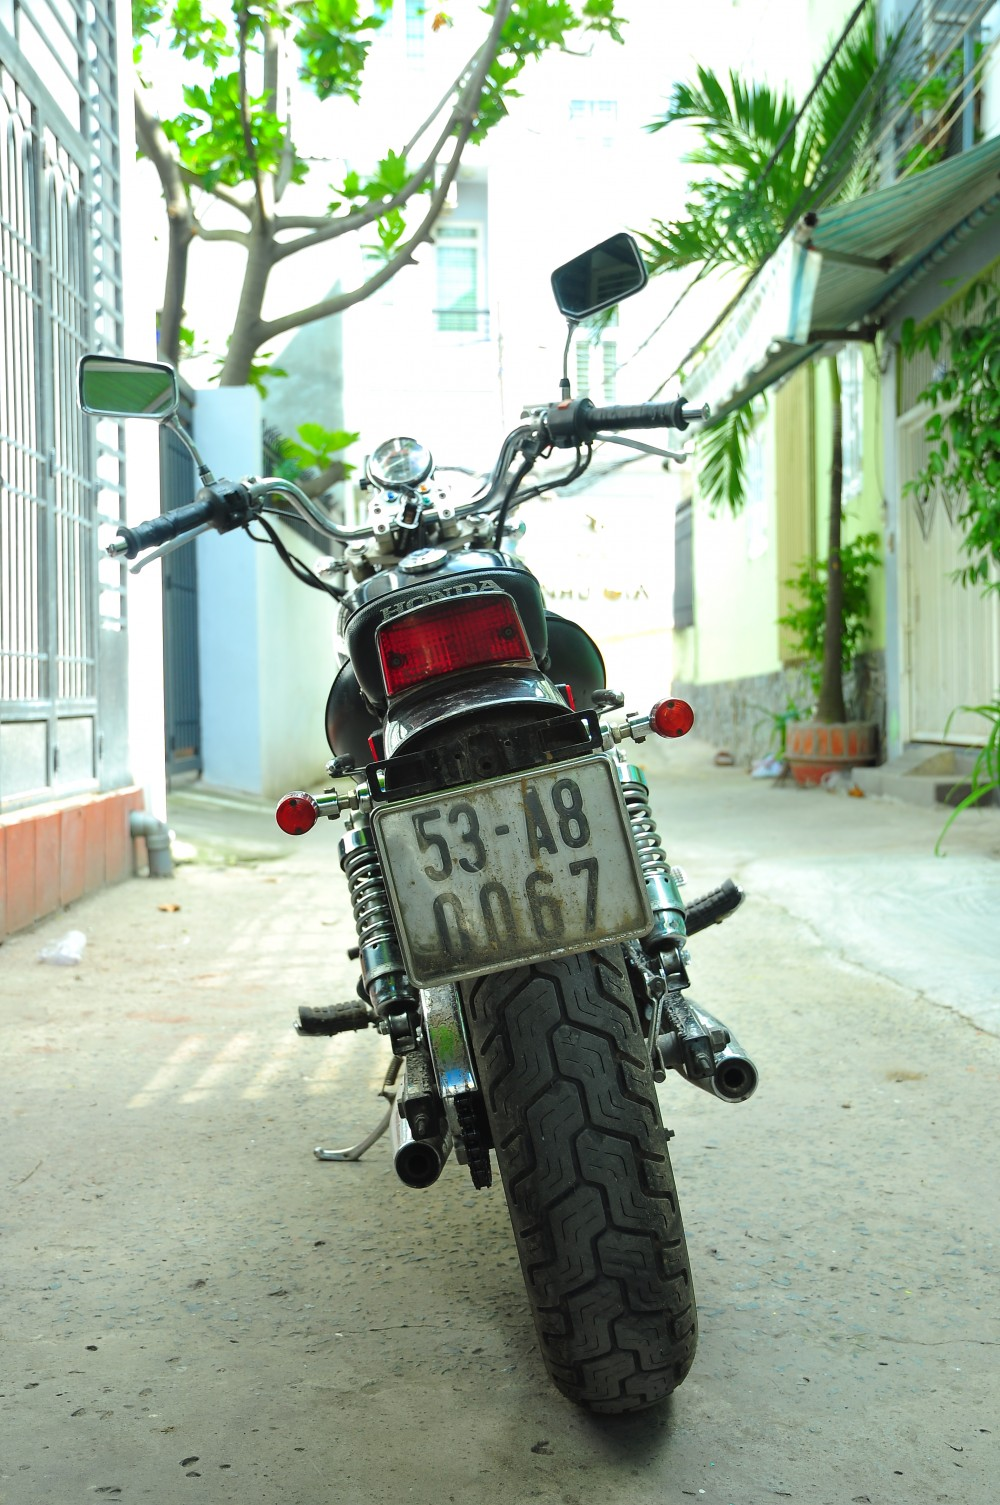 HCM Can ban Honda Rebel 250 HQCN 2009